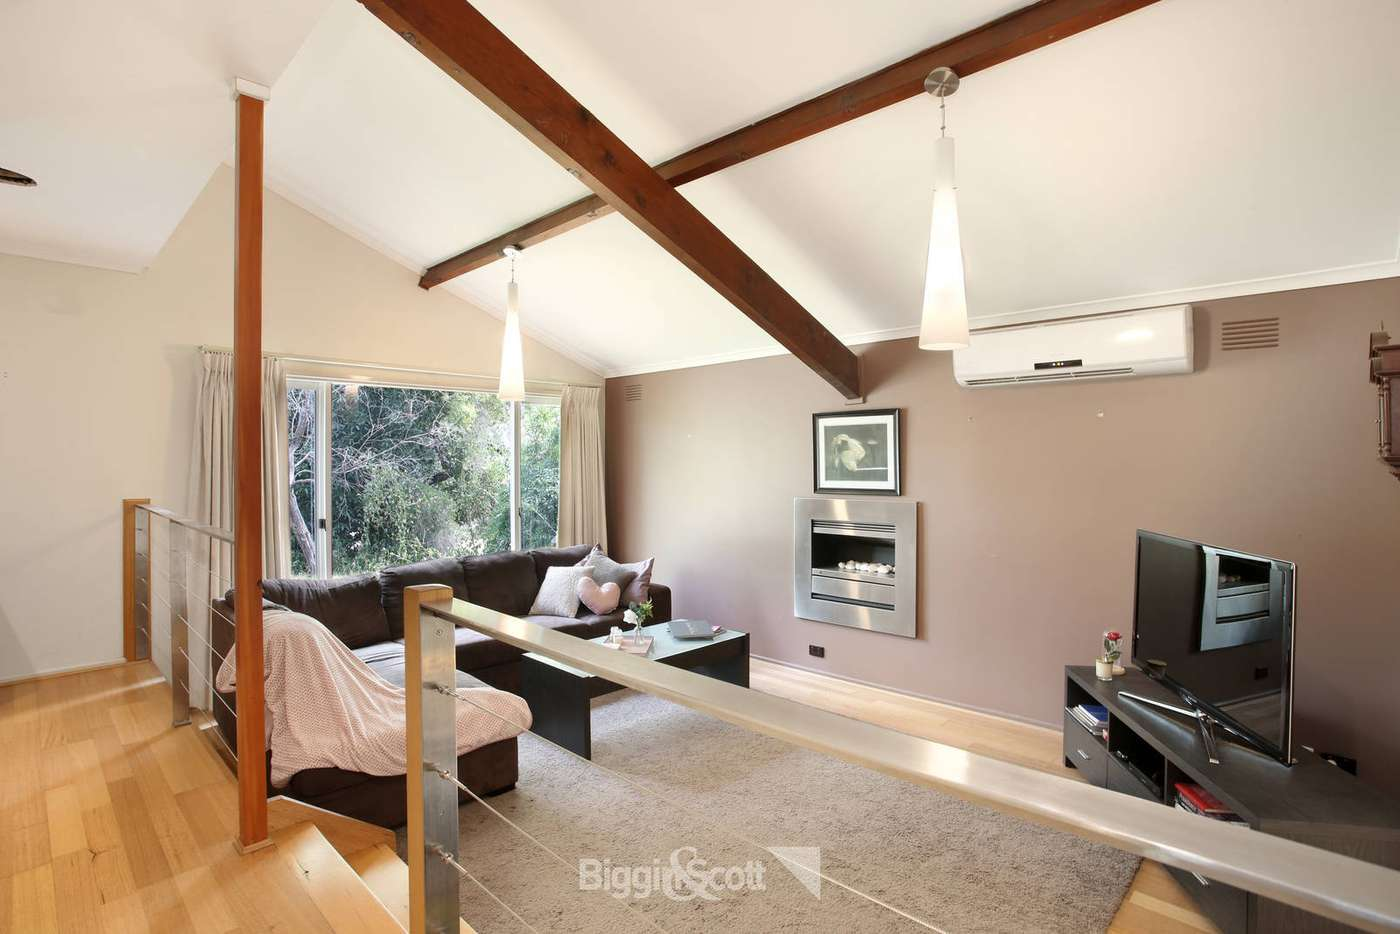 Main view of Homely house listing, 32 Ambleside Crescent, Berwick VIC 3806